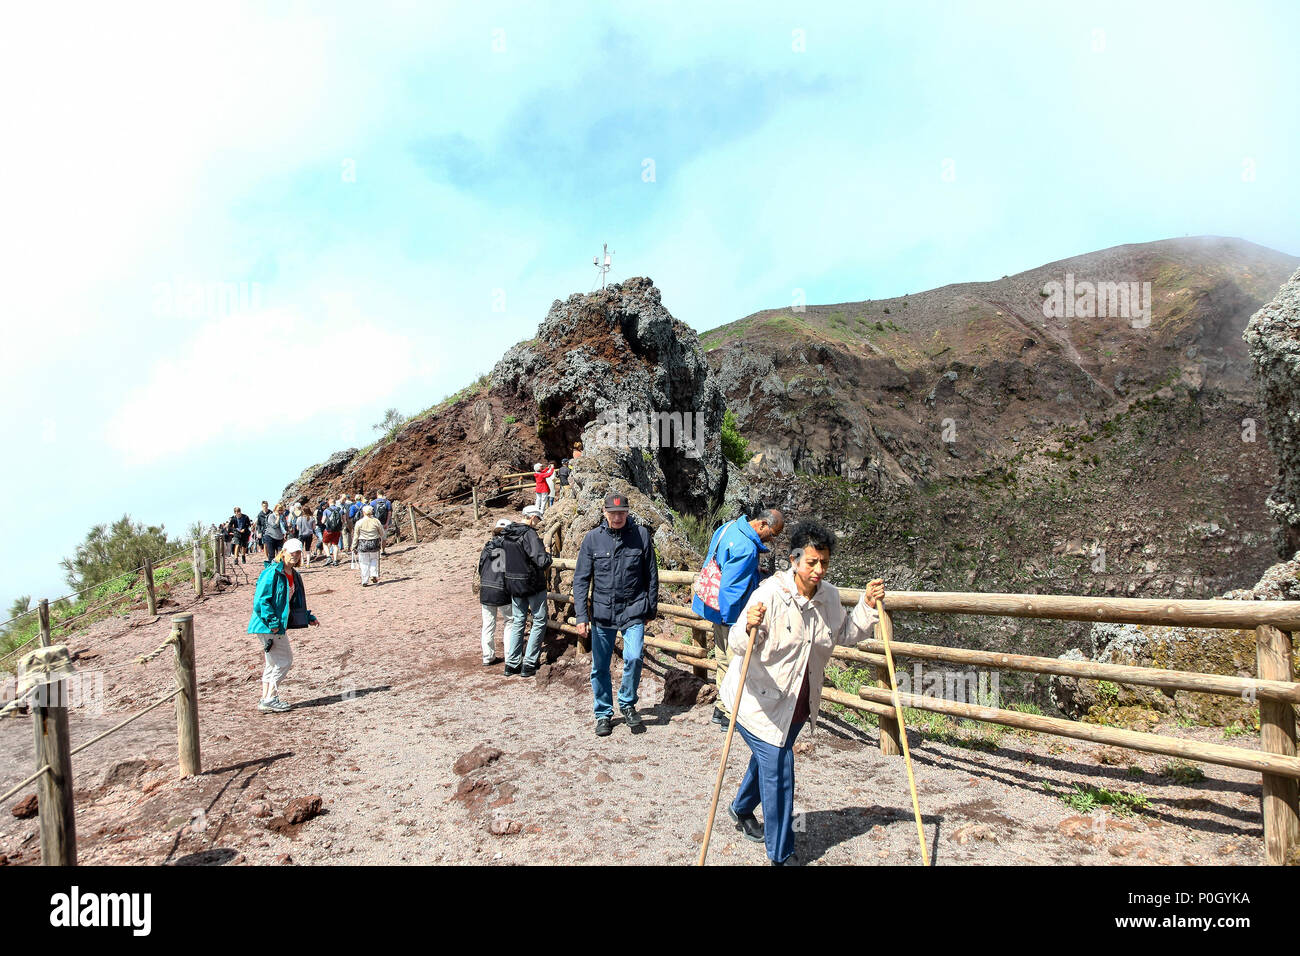 People walking up Vesuvius, Mount Vesuvius or Vesuvio, an active volcano that rises above the Bay of Naples on the plain of Campania in Italy Stock Photo